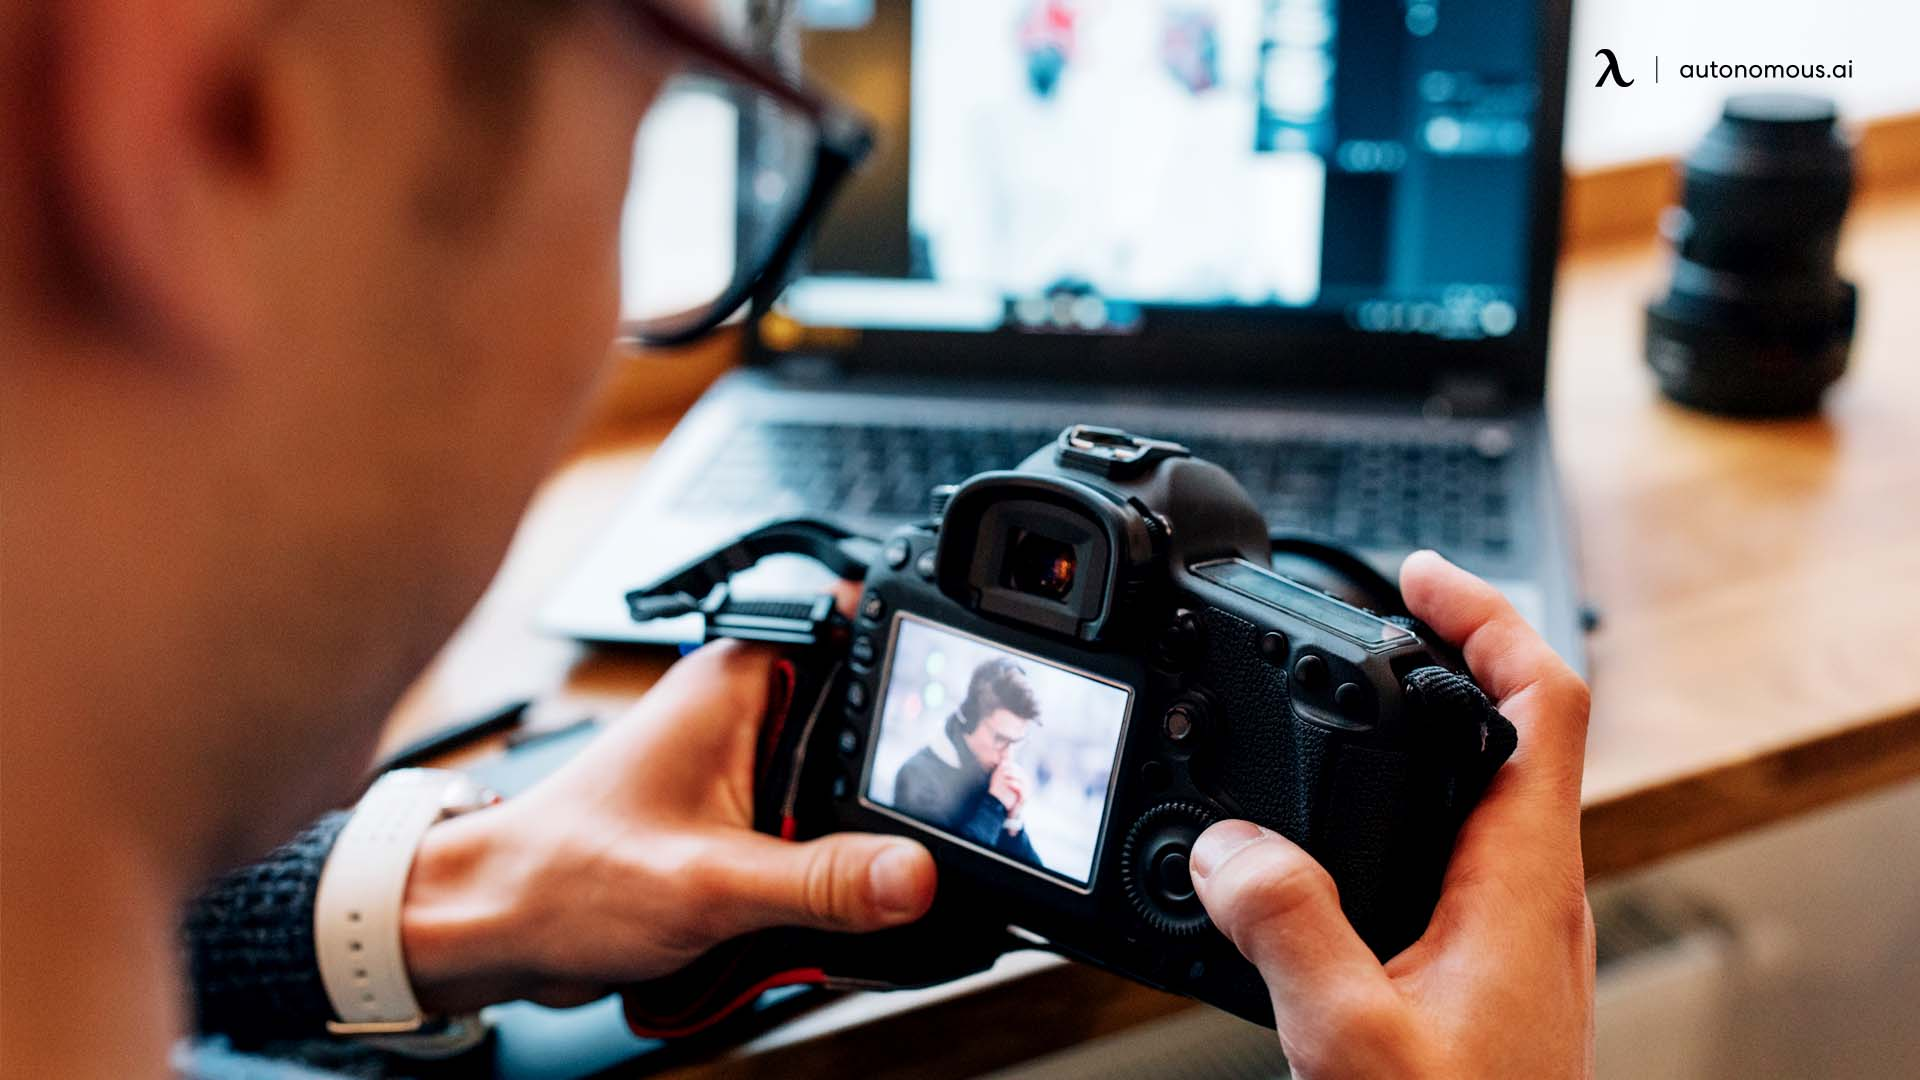 What Does a Photographer Need to Have a Productive Workspace?